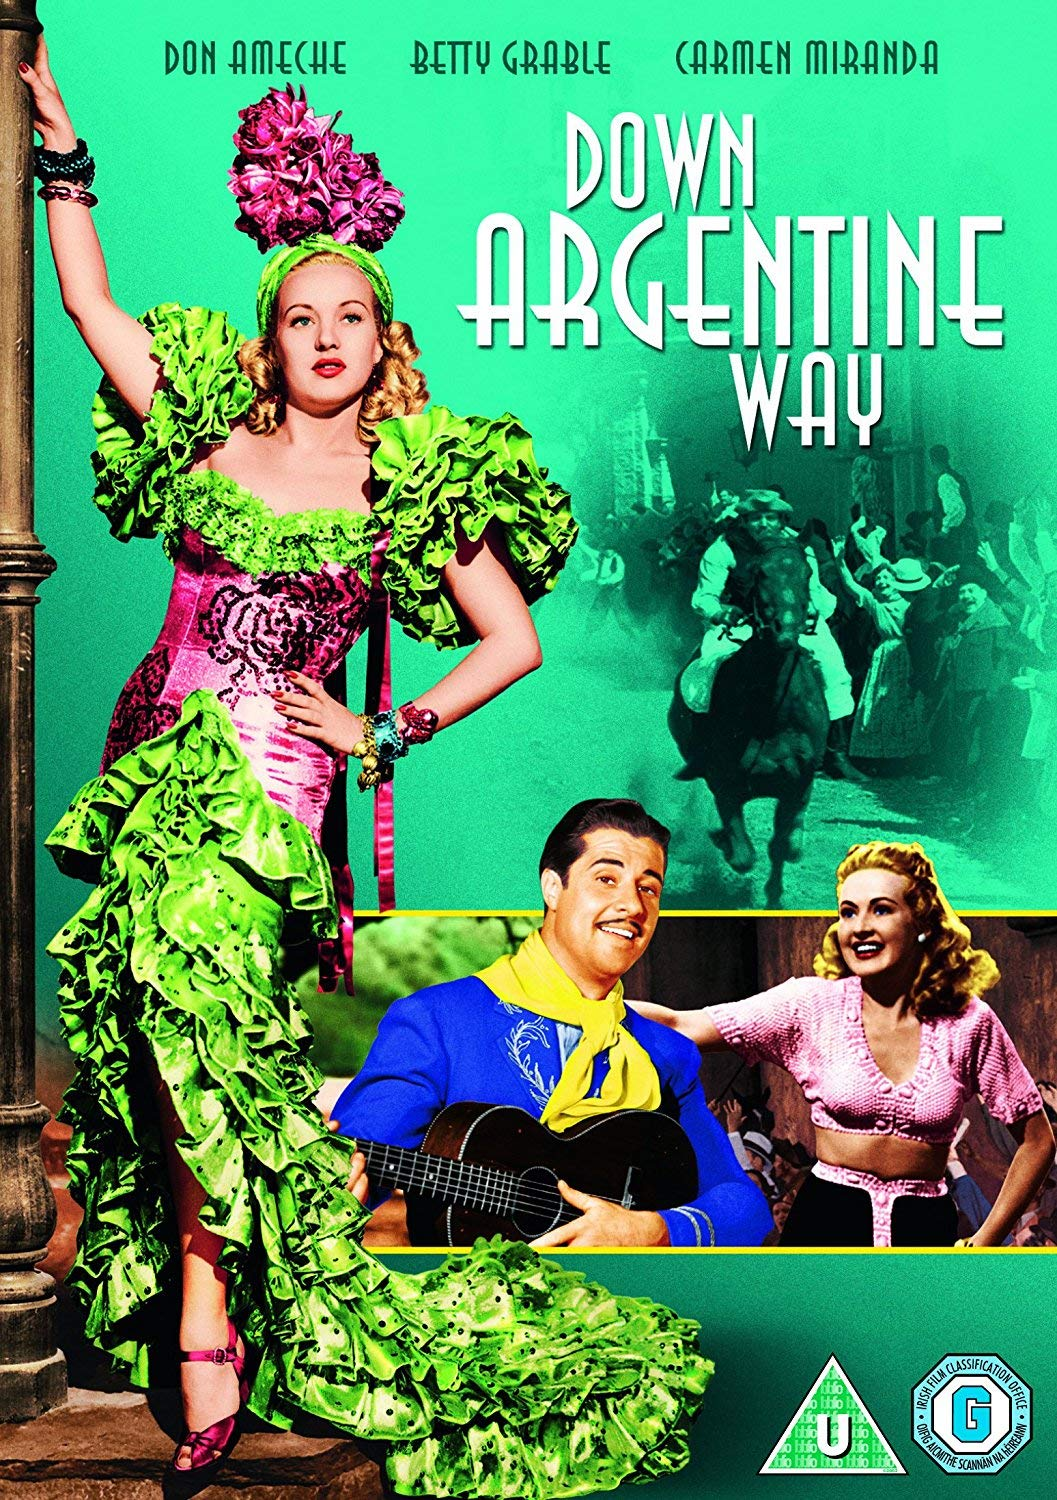 Down Argentine Way Dvd 1940 Amazon Co Uk Betty Grable